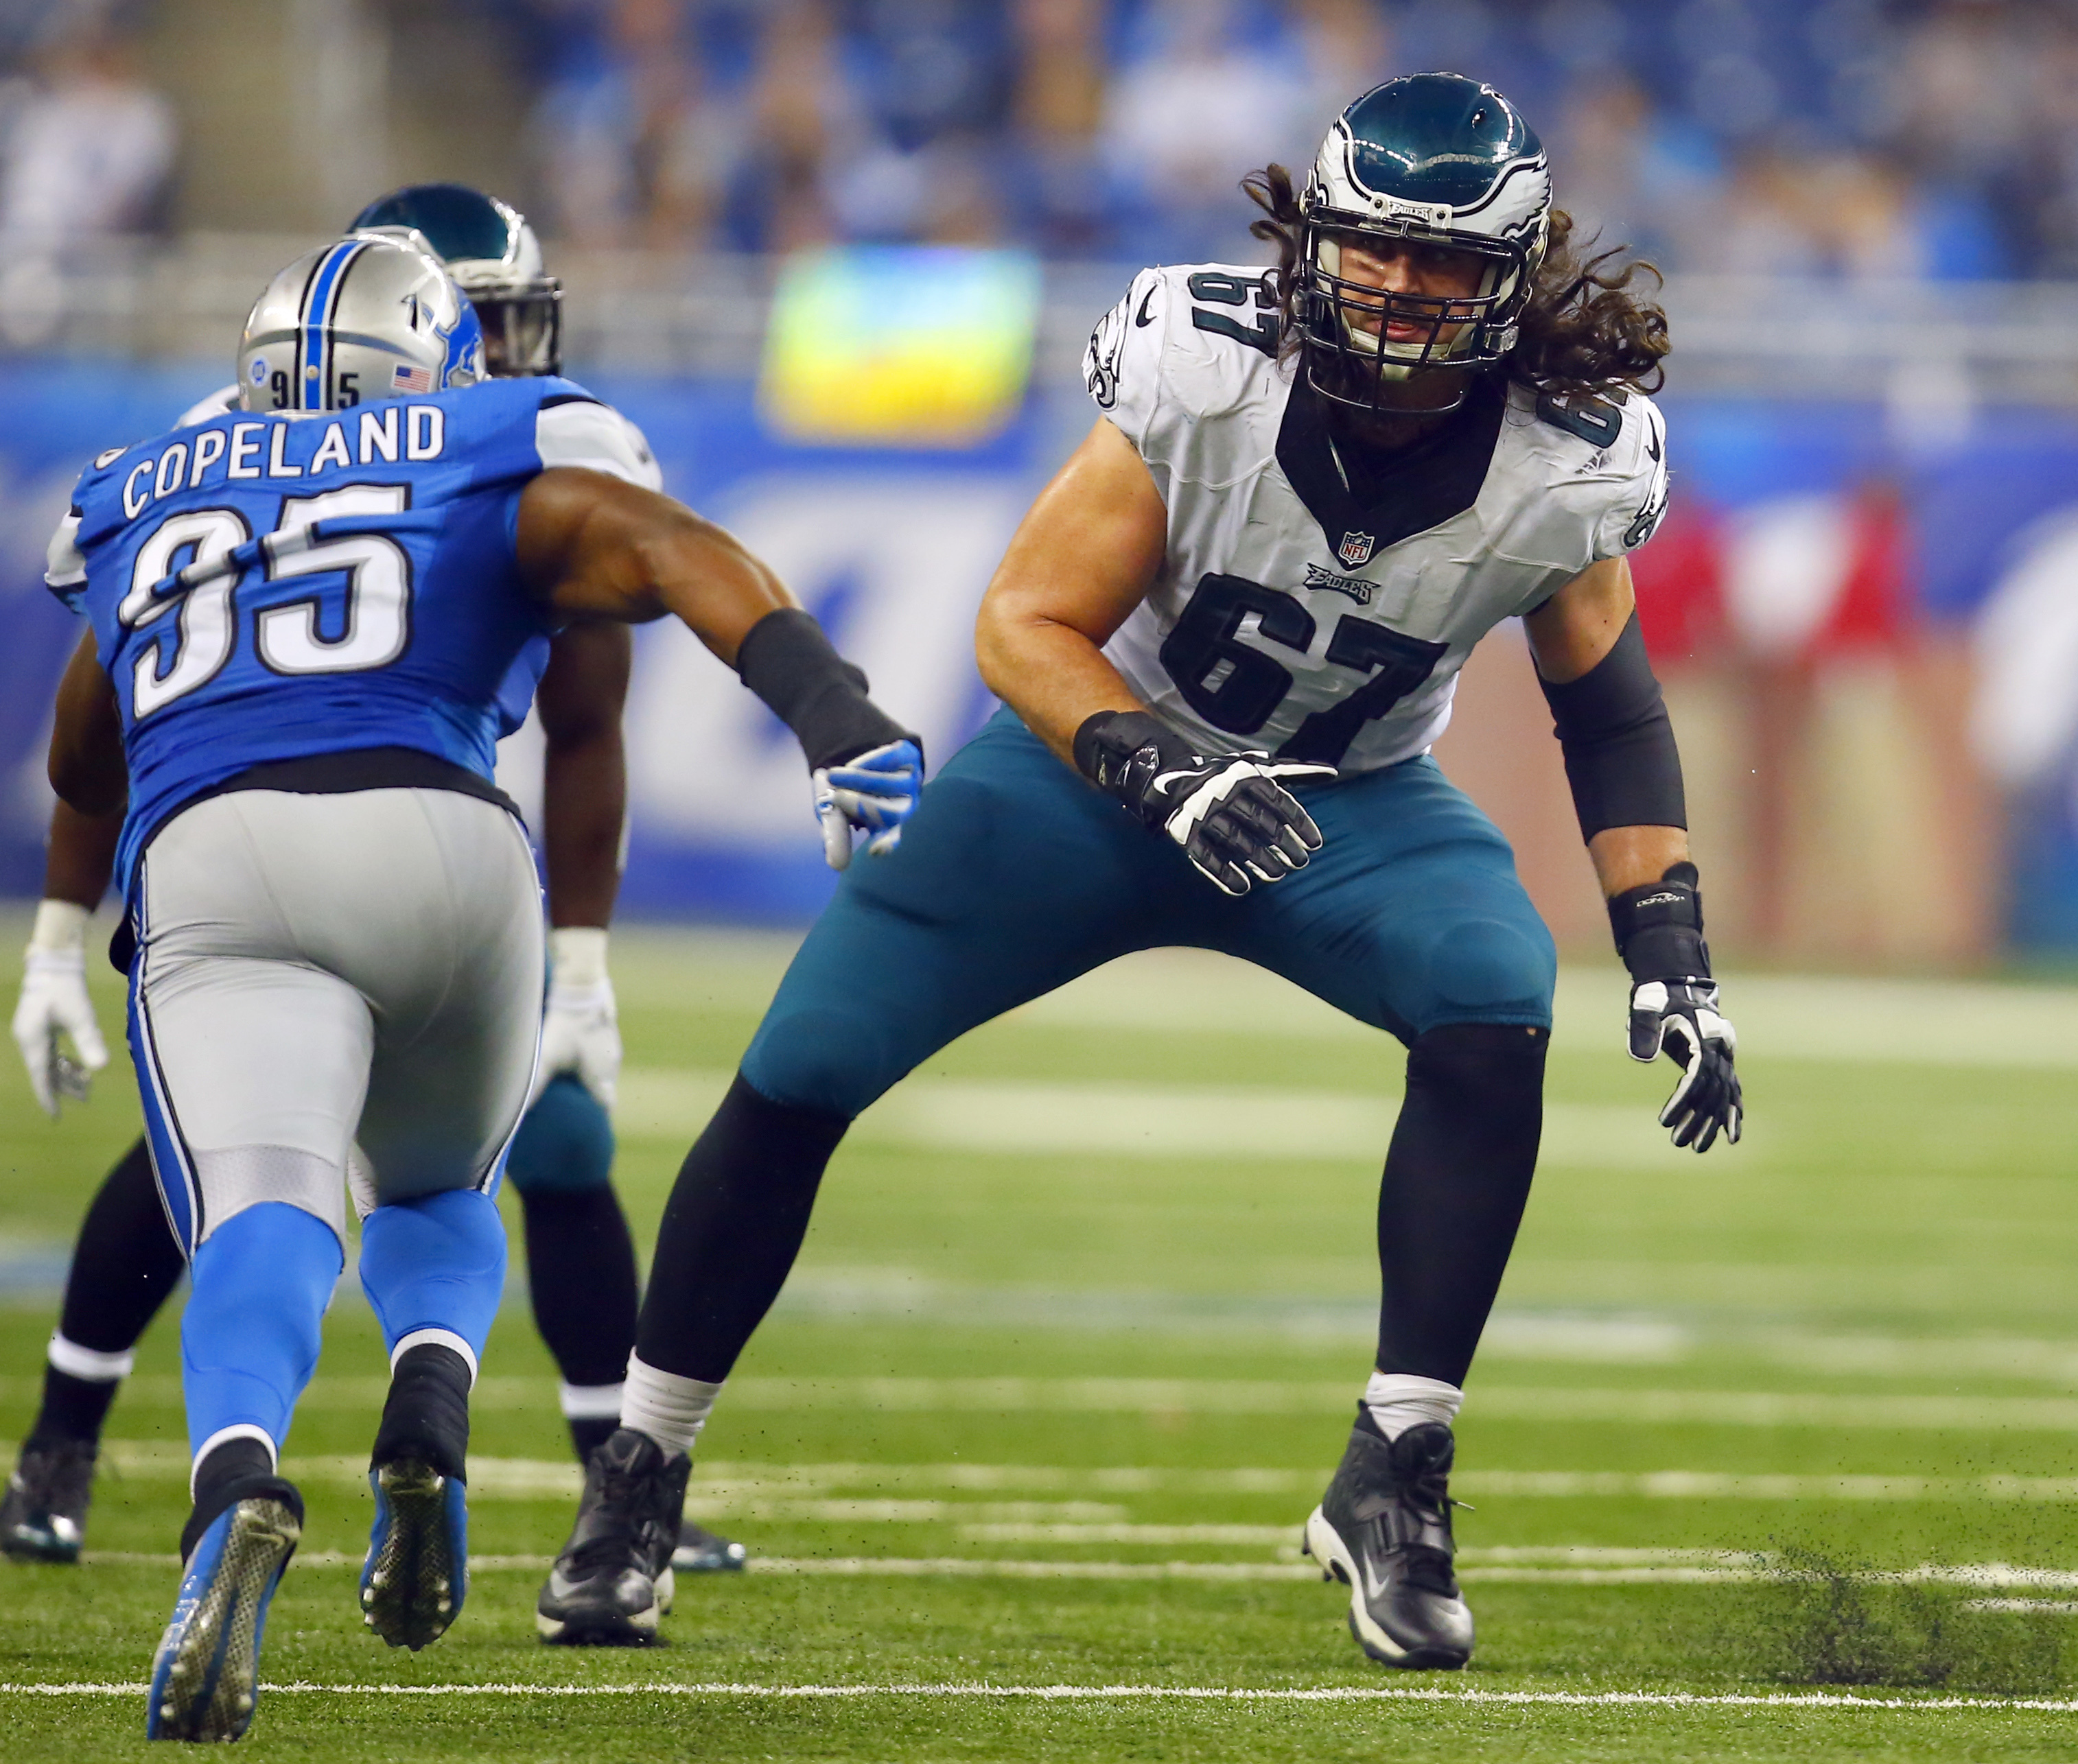 FILE - In this Nov. 26, 2015, file photo, then-Philadelphia Eagles offensive tackle Dennis Kelly (67) sets to block Detroit Lions linebacker Brandon Copeland (95) during an NFL football game, in Detroit. The Tennessee Titans' offensive line features three